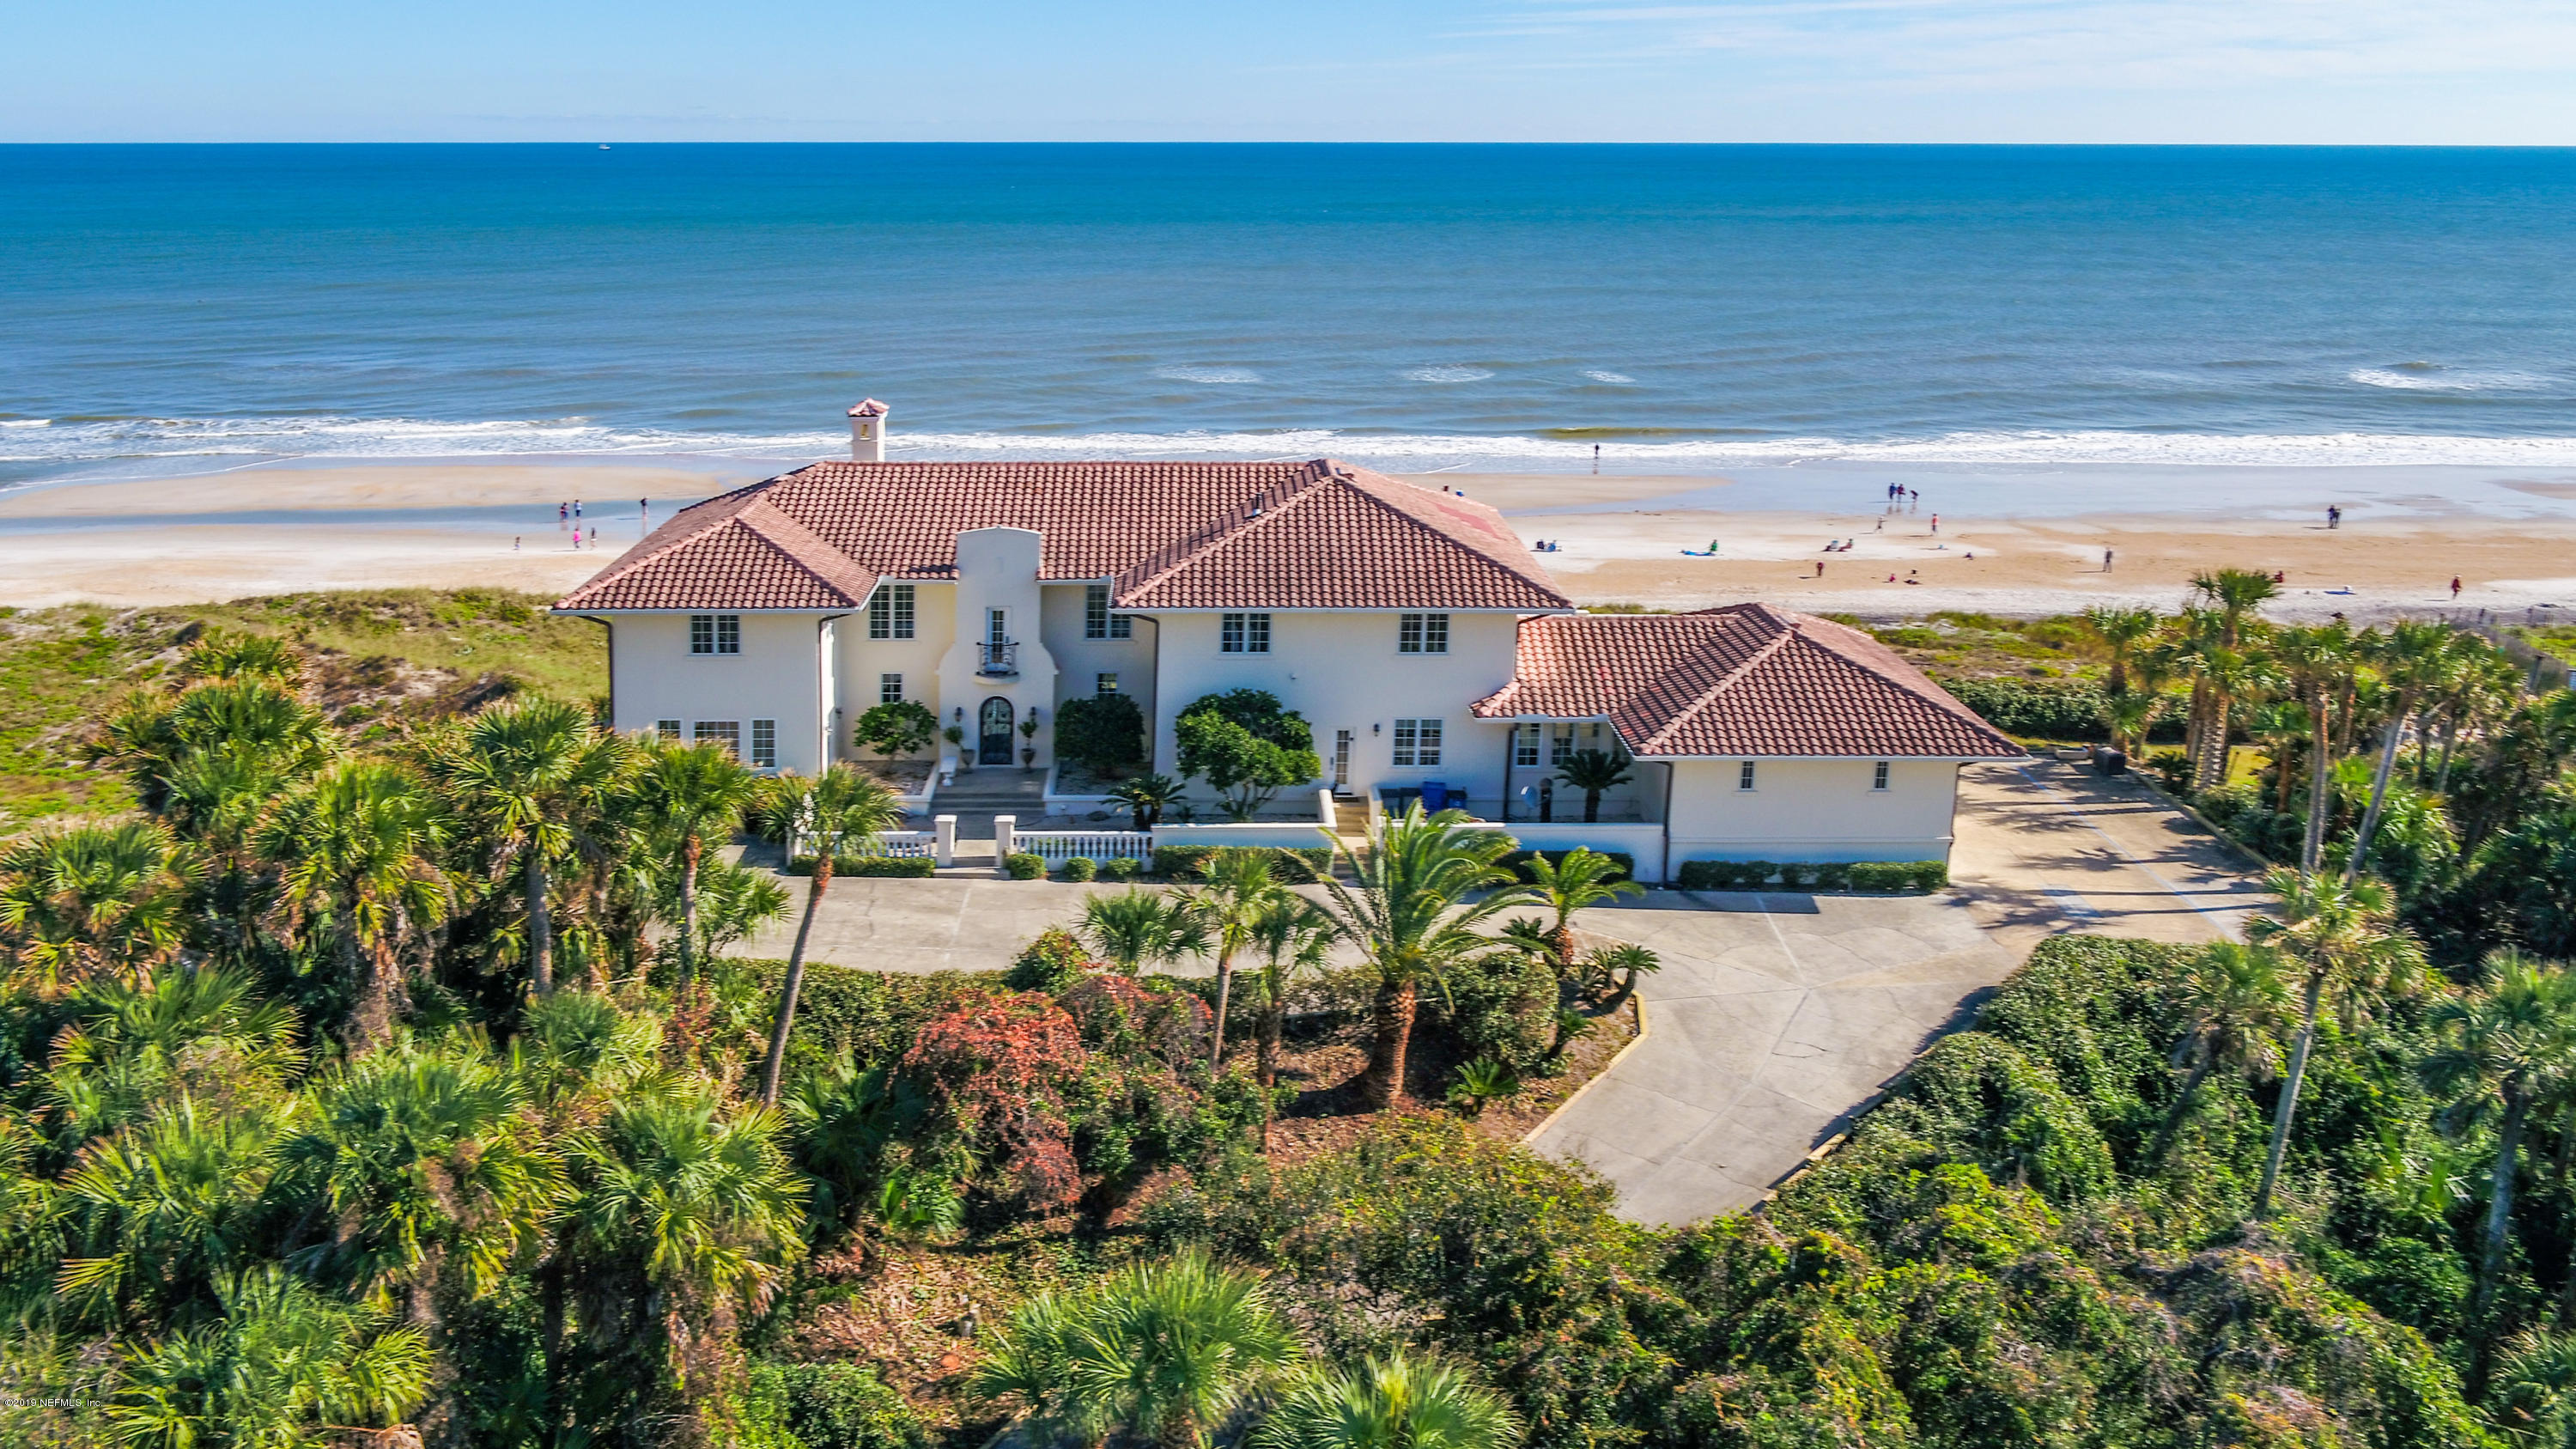 1109 PONTE VEDRA, PONTE VEDRA BEACH, FLORIDA 32082, 5 Bedrooms Bedrooms, ,4 BathroomsBathrooms,Residential,For sale,PONTE VEDRA,1026781